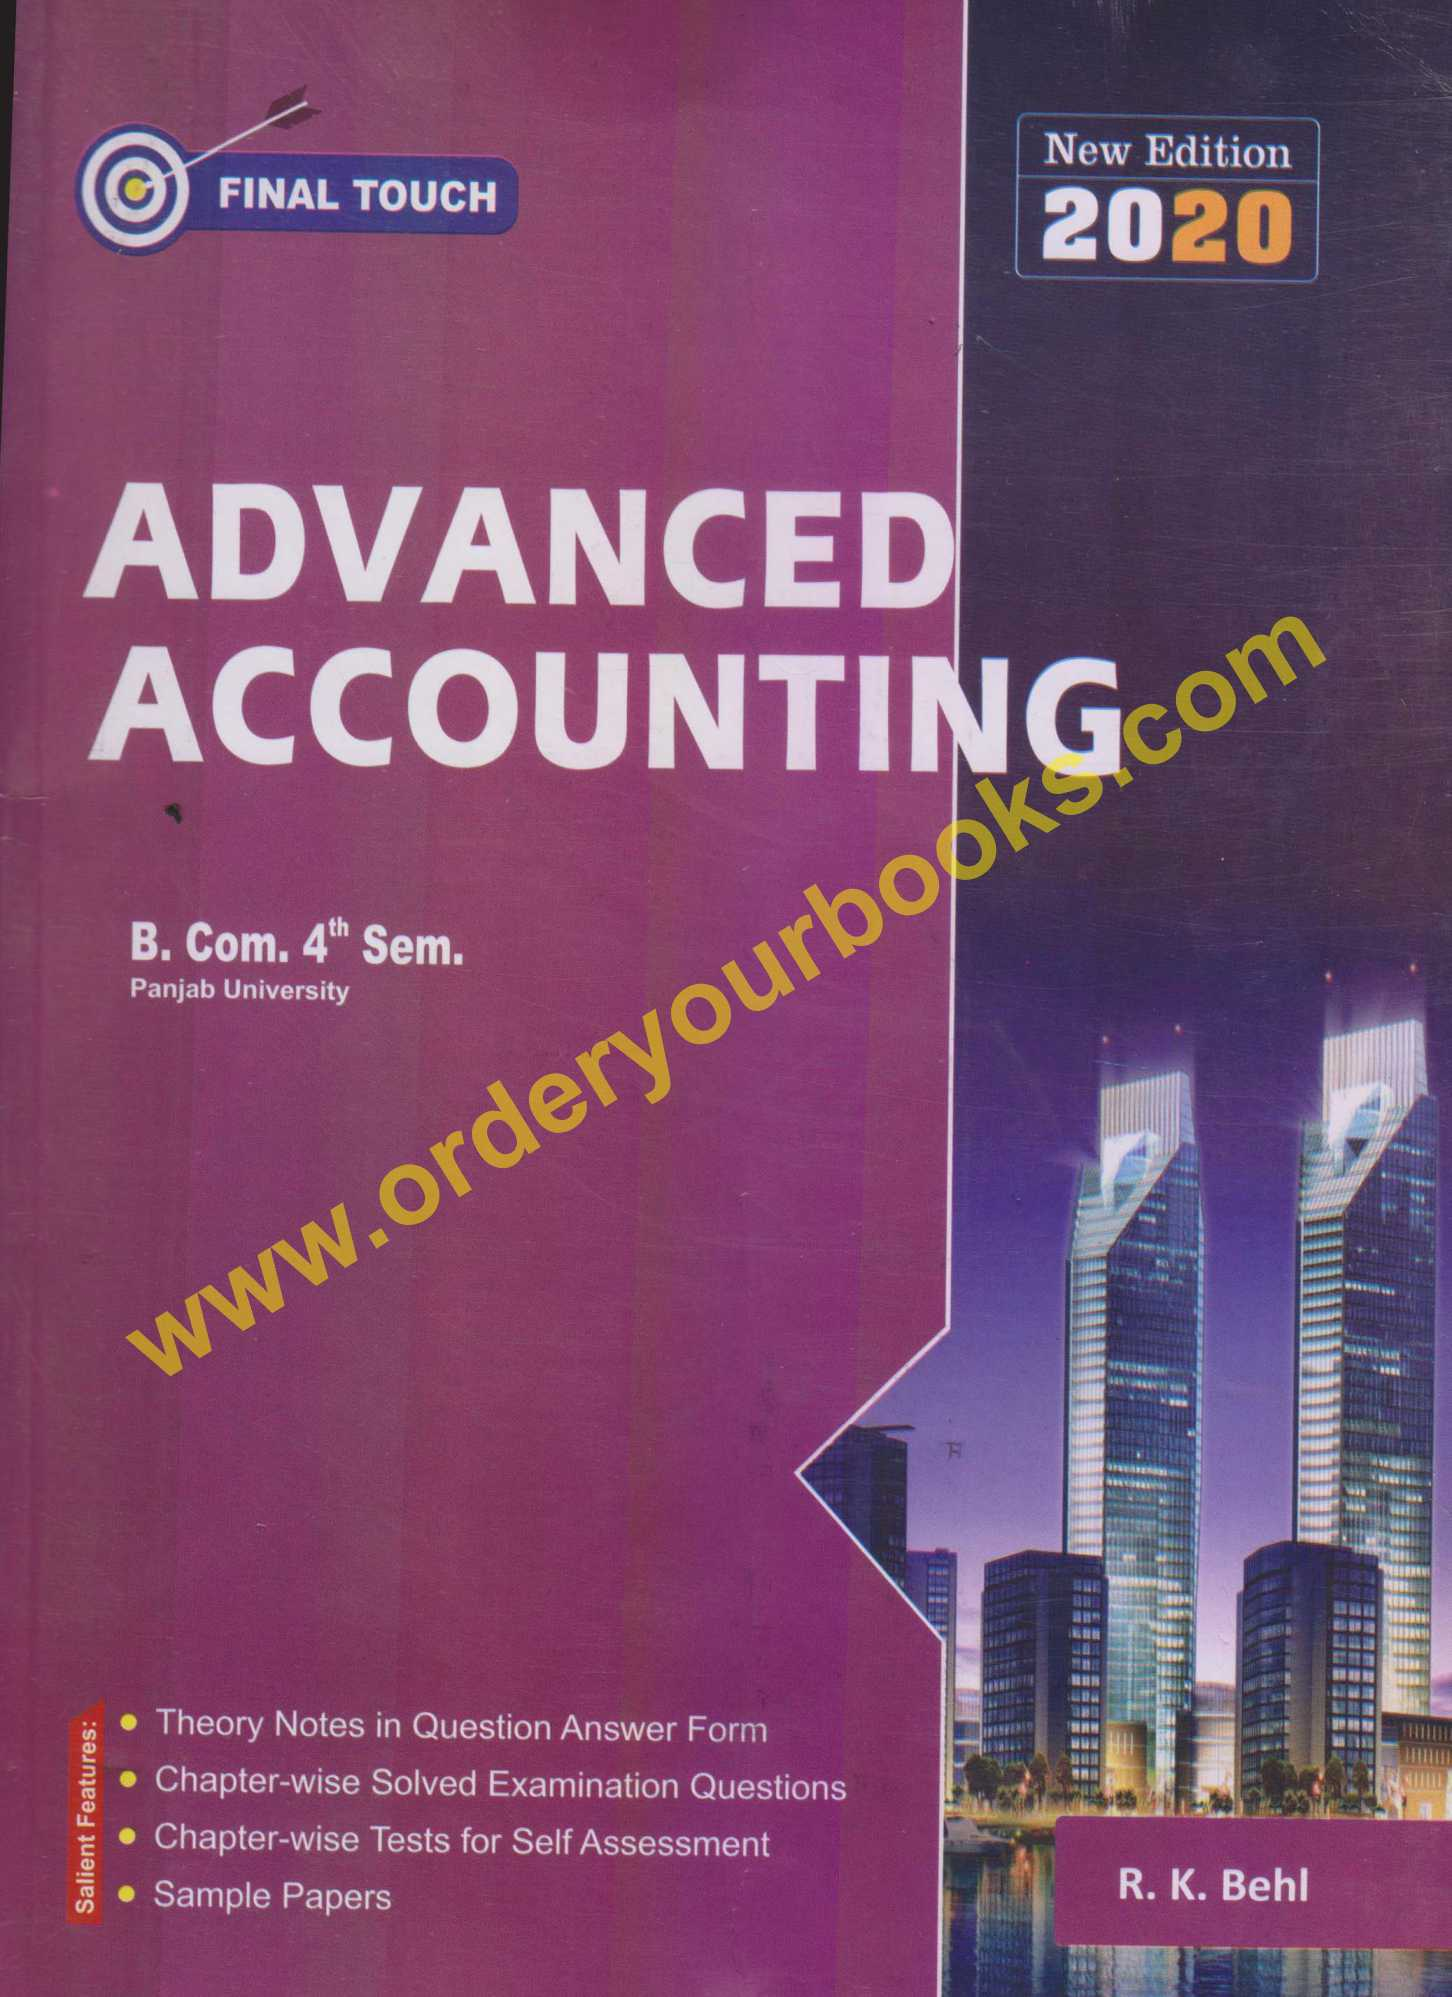 Final Touch Advanced Accounting for Semester-IV B.Com (P.U.) by R.K Behl (Aastha Publication) Edition 2020 for Panjab University